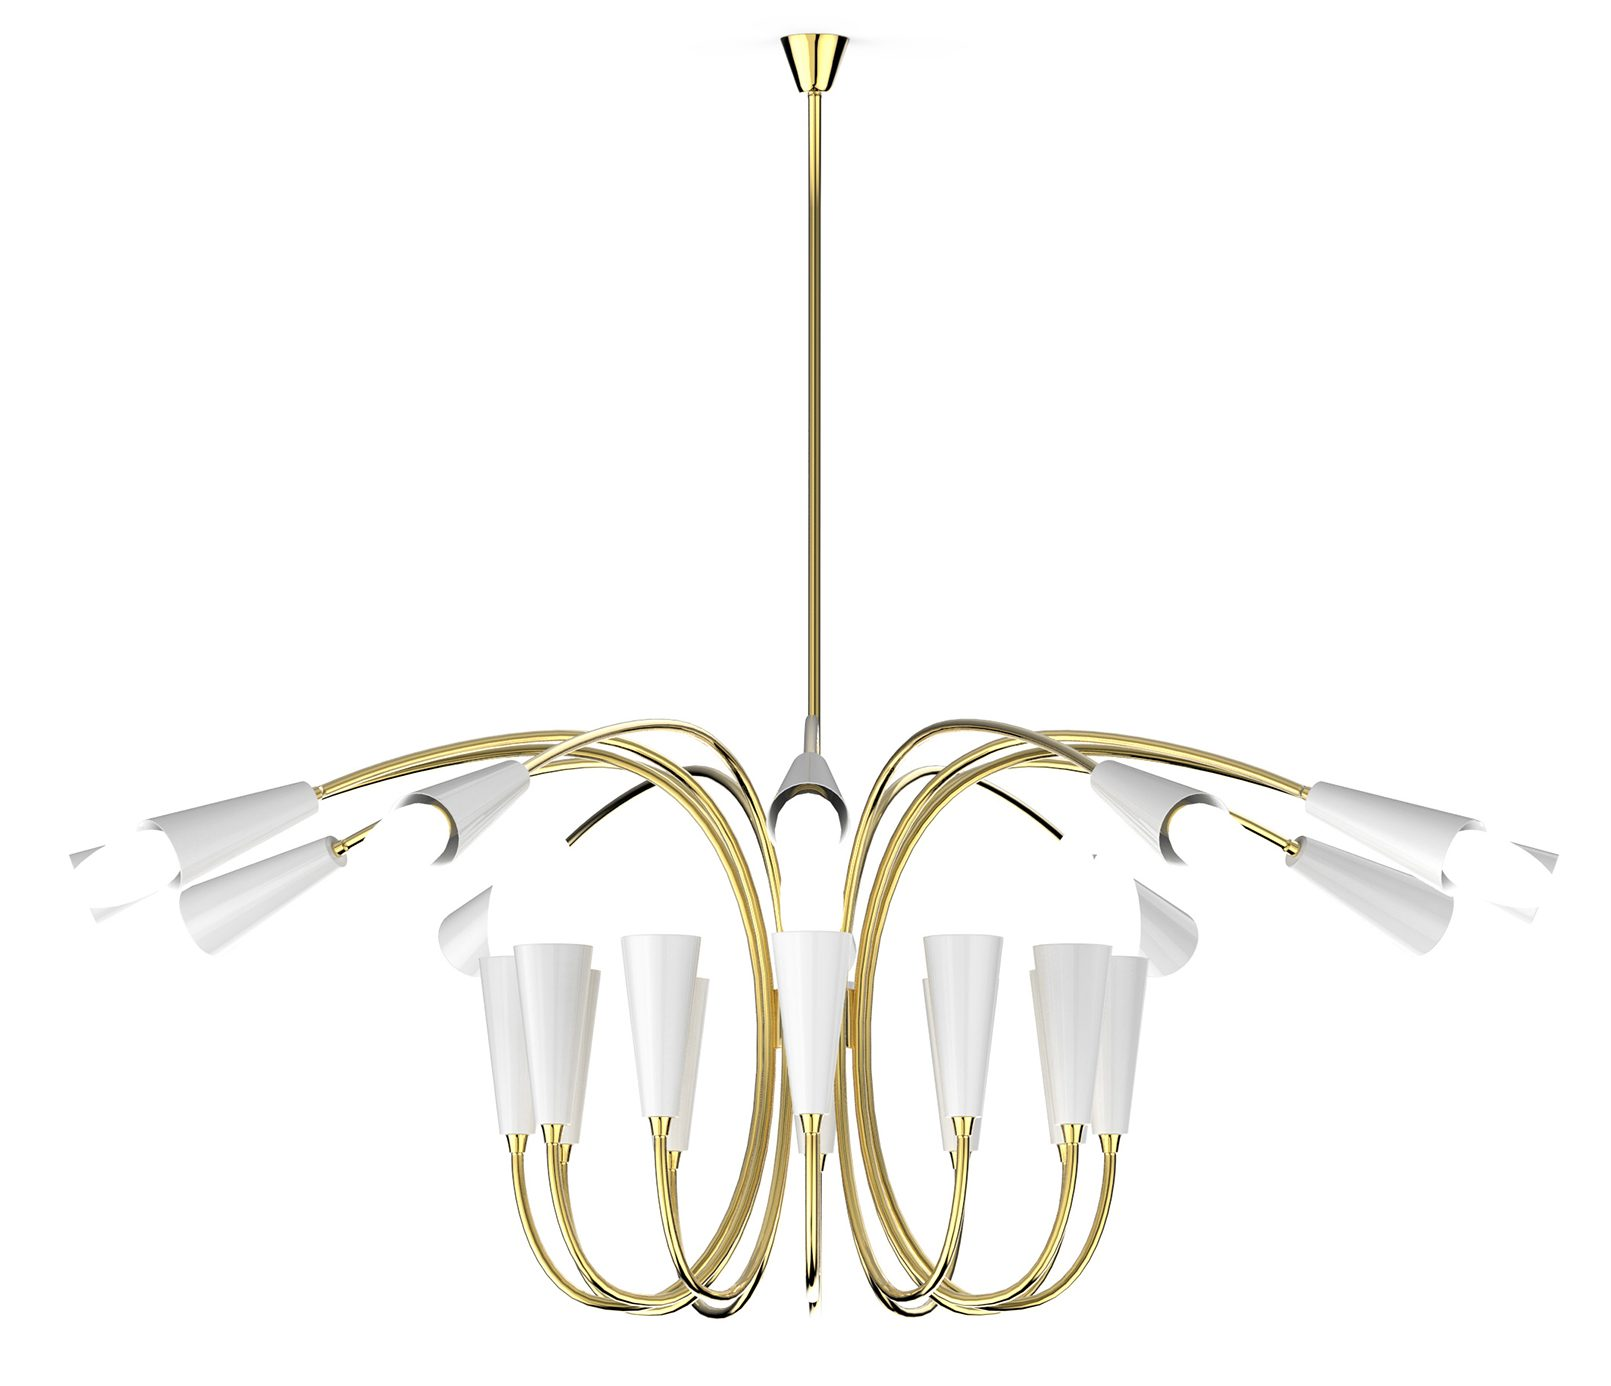 mid-century lighting mid-century lighting Christmas Décor With Mid-Century Lighting Pieces aretha chandelier detail 04 HR e1540224820886